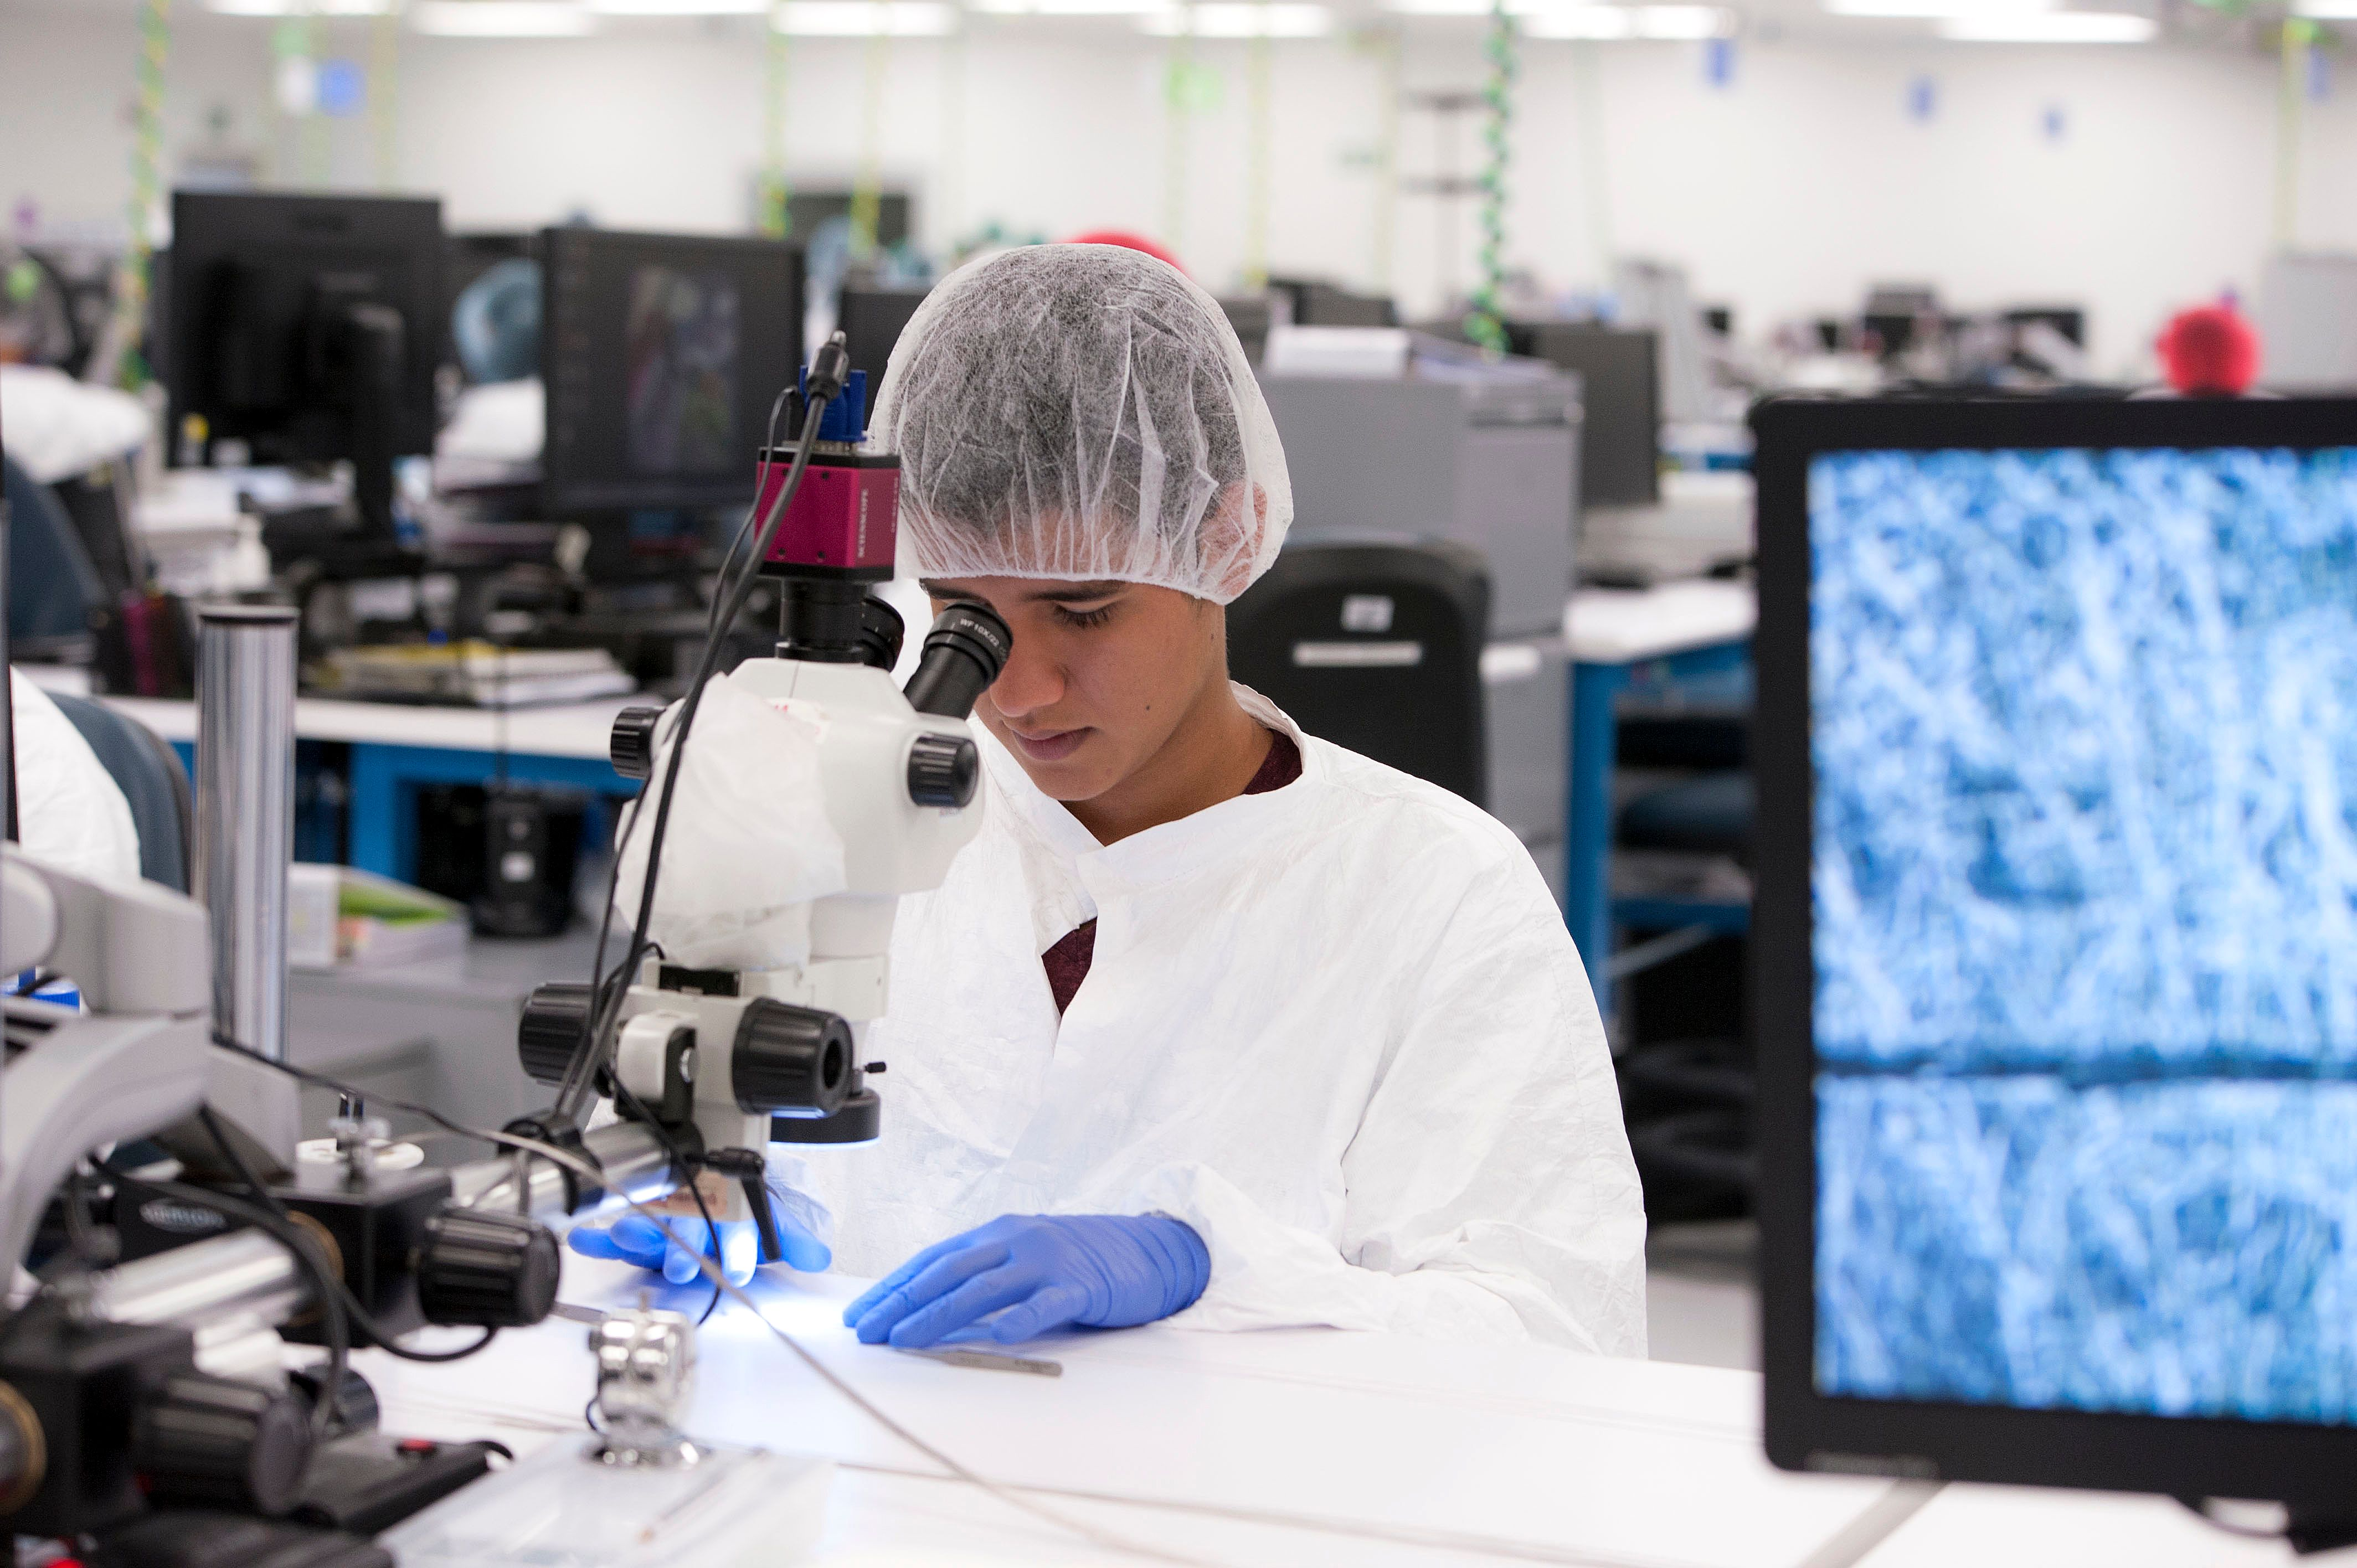 A Costa-Rican employee of Microvention inspecting a device for quality assurance.